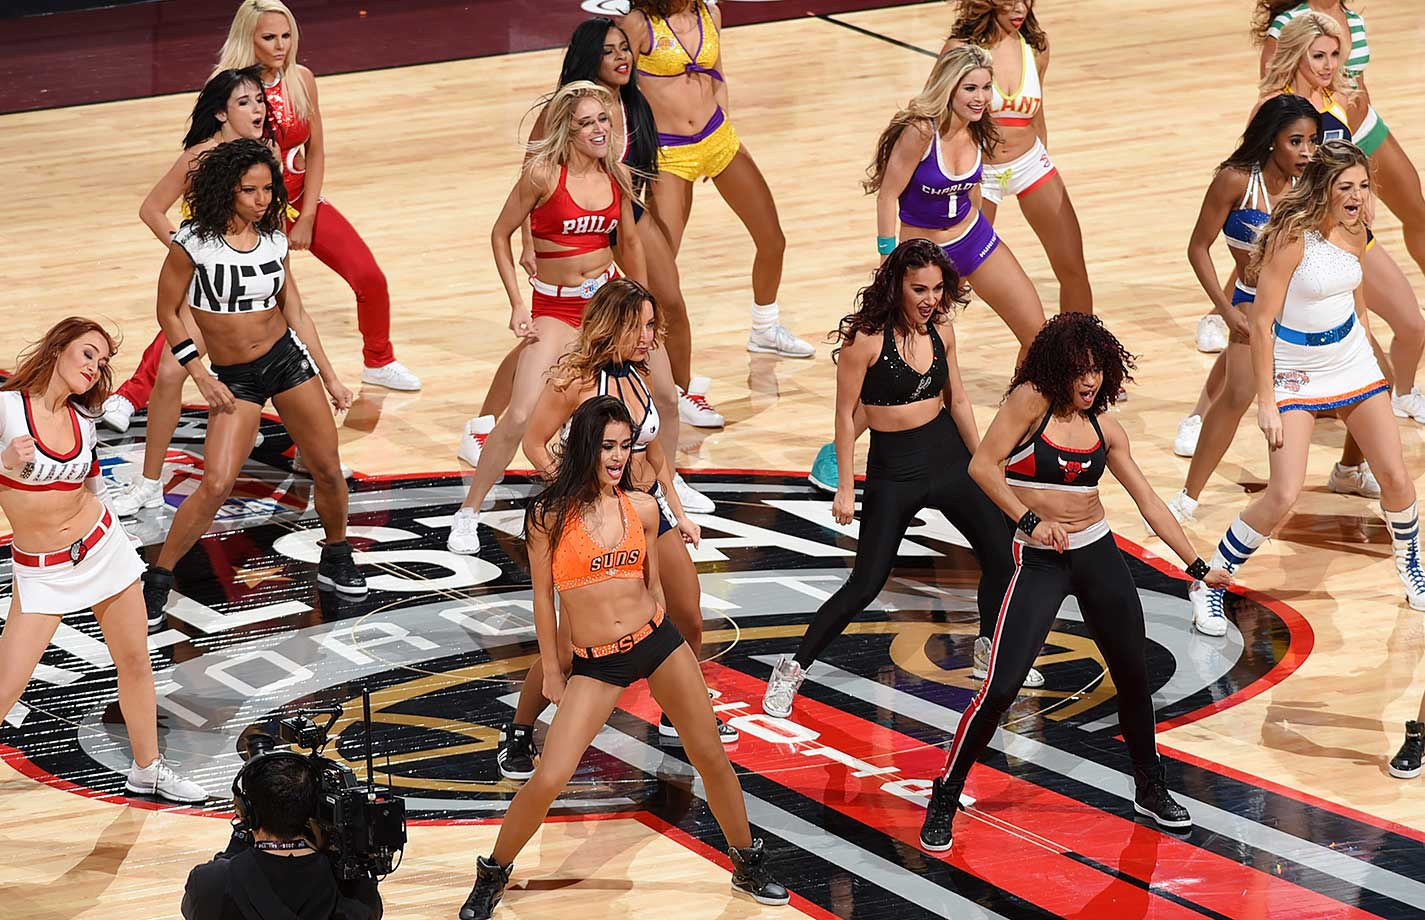 NBA team dancers are seen during the Three-Point Contest.